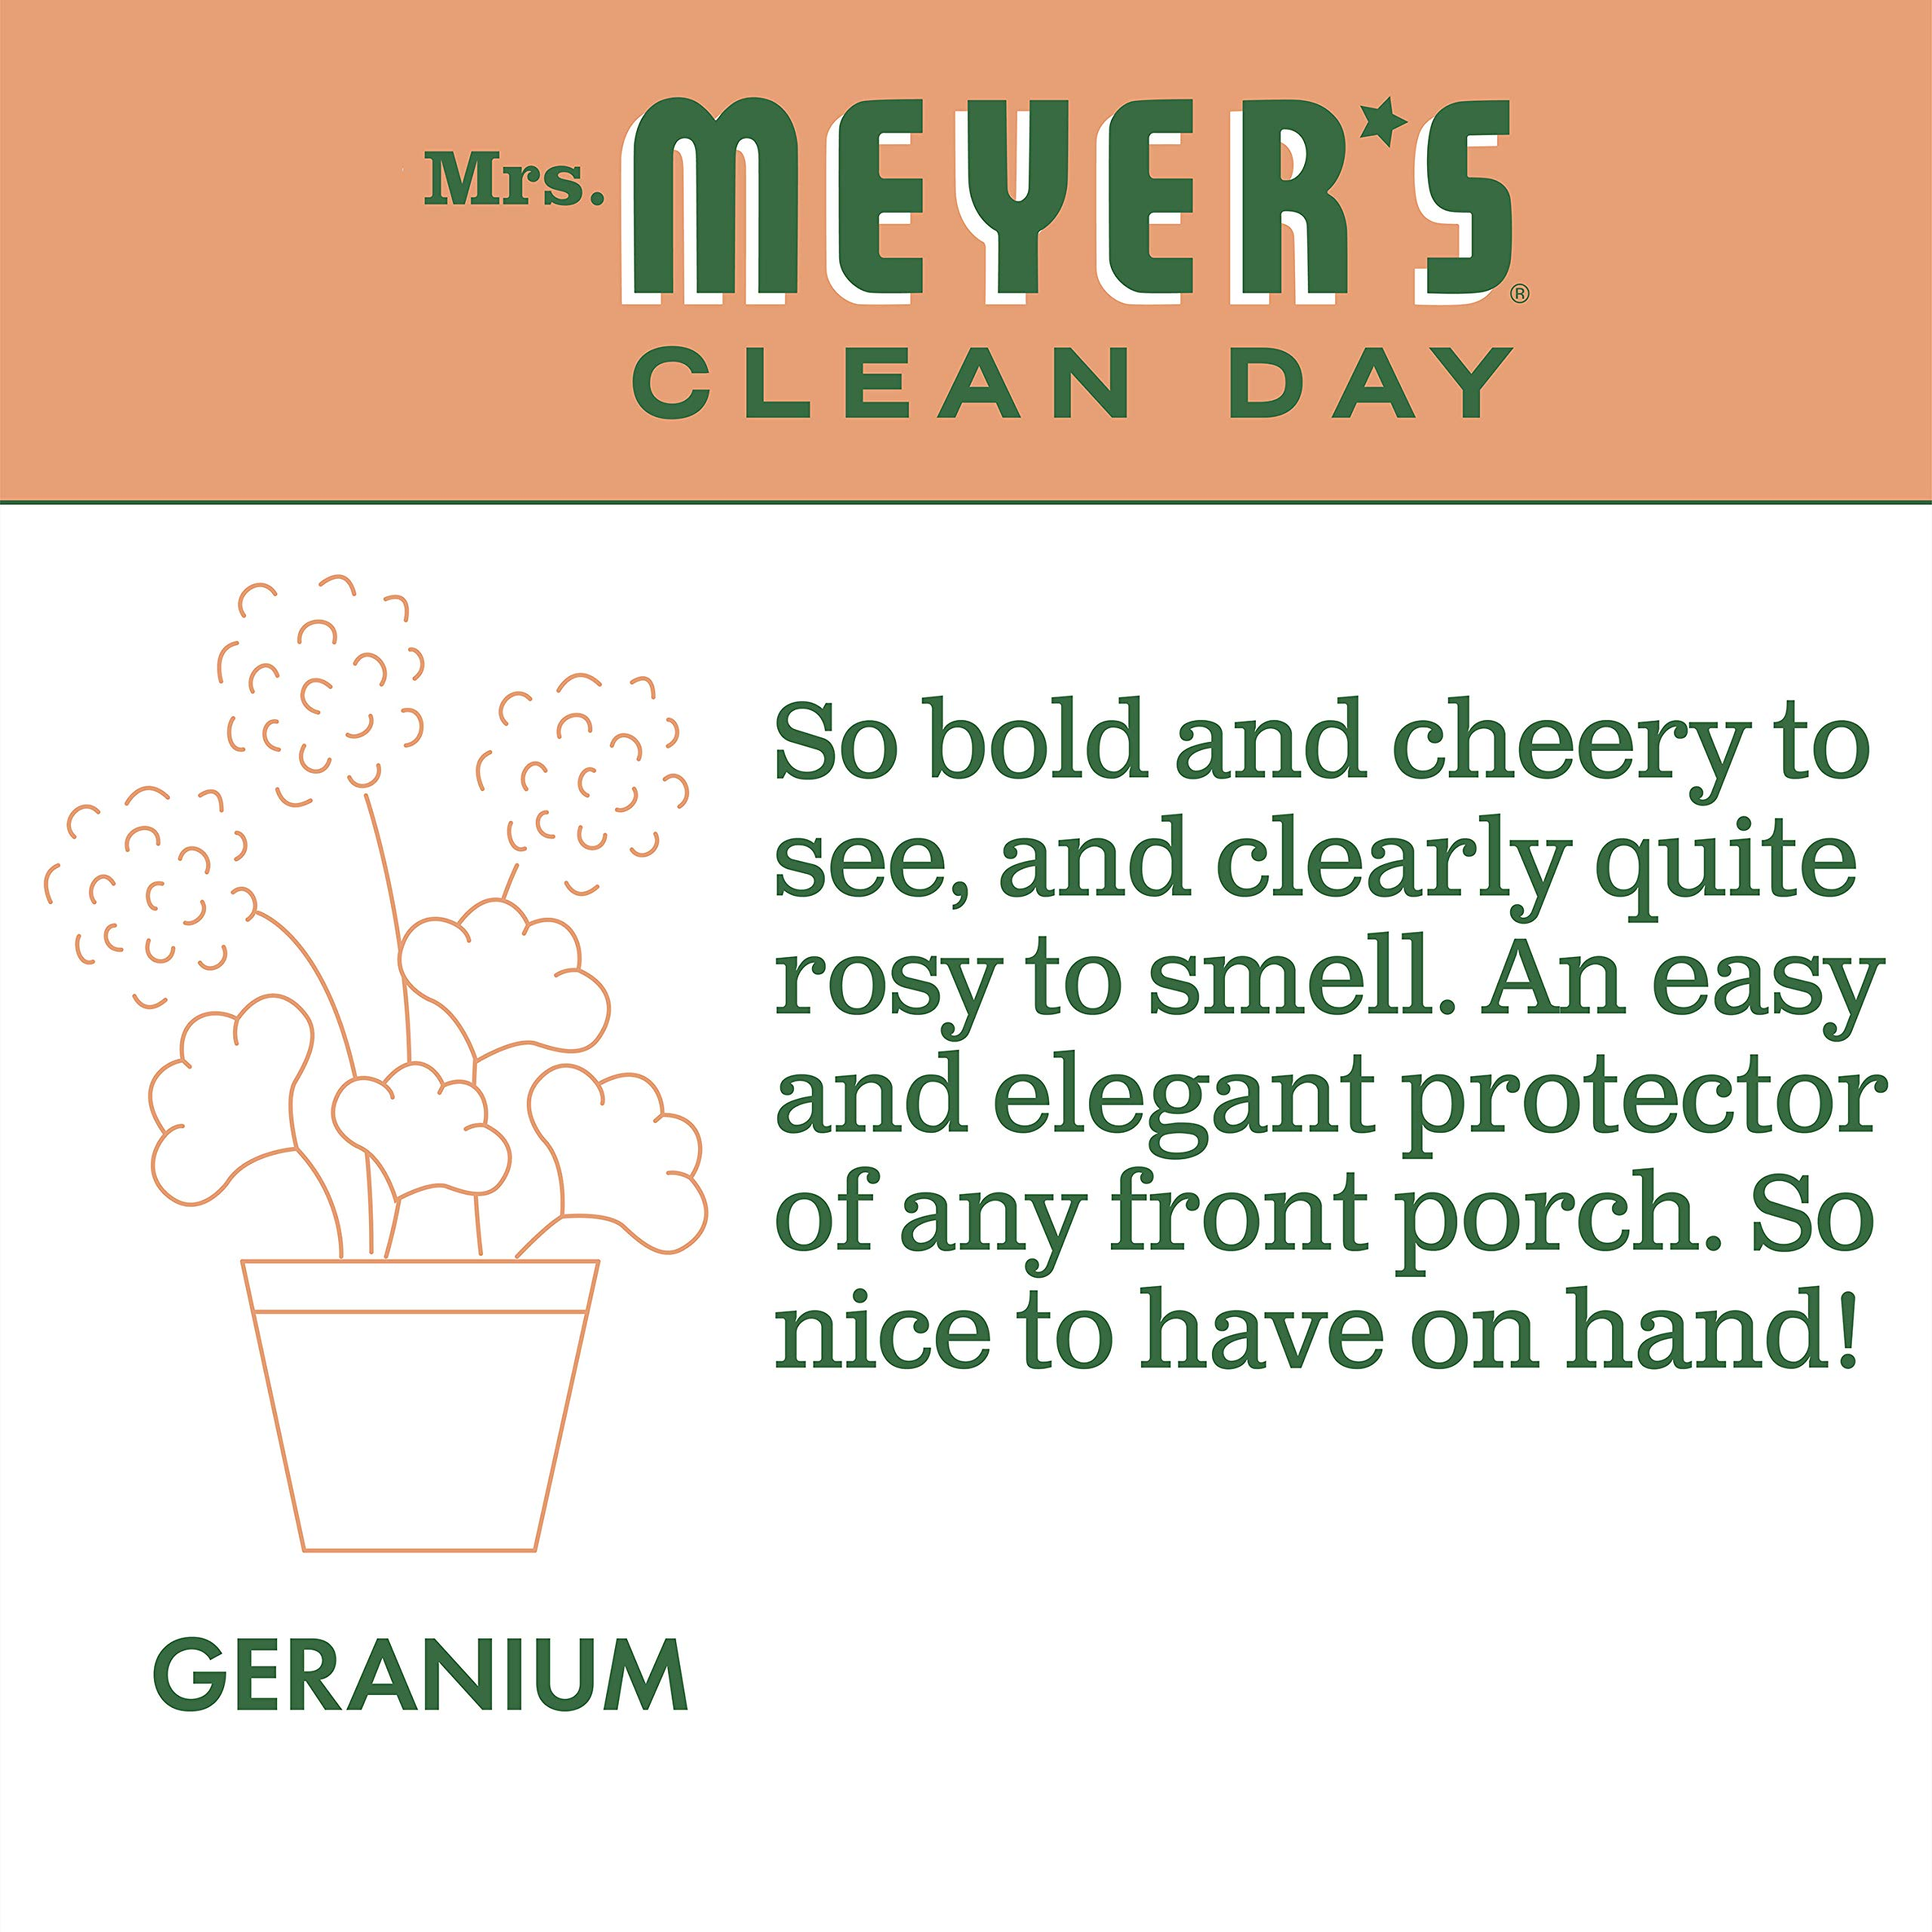 Mrs. Meyer's Clean Day Multi-Surface Concentrate, Geranium, 32 fl oz, 2 ct by Mrs. Meyer's Clean Day (Image #4)